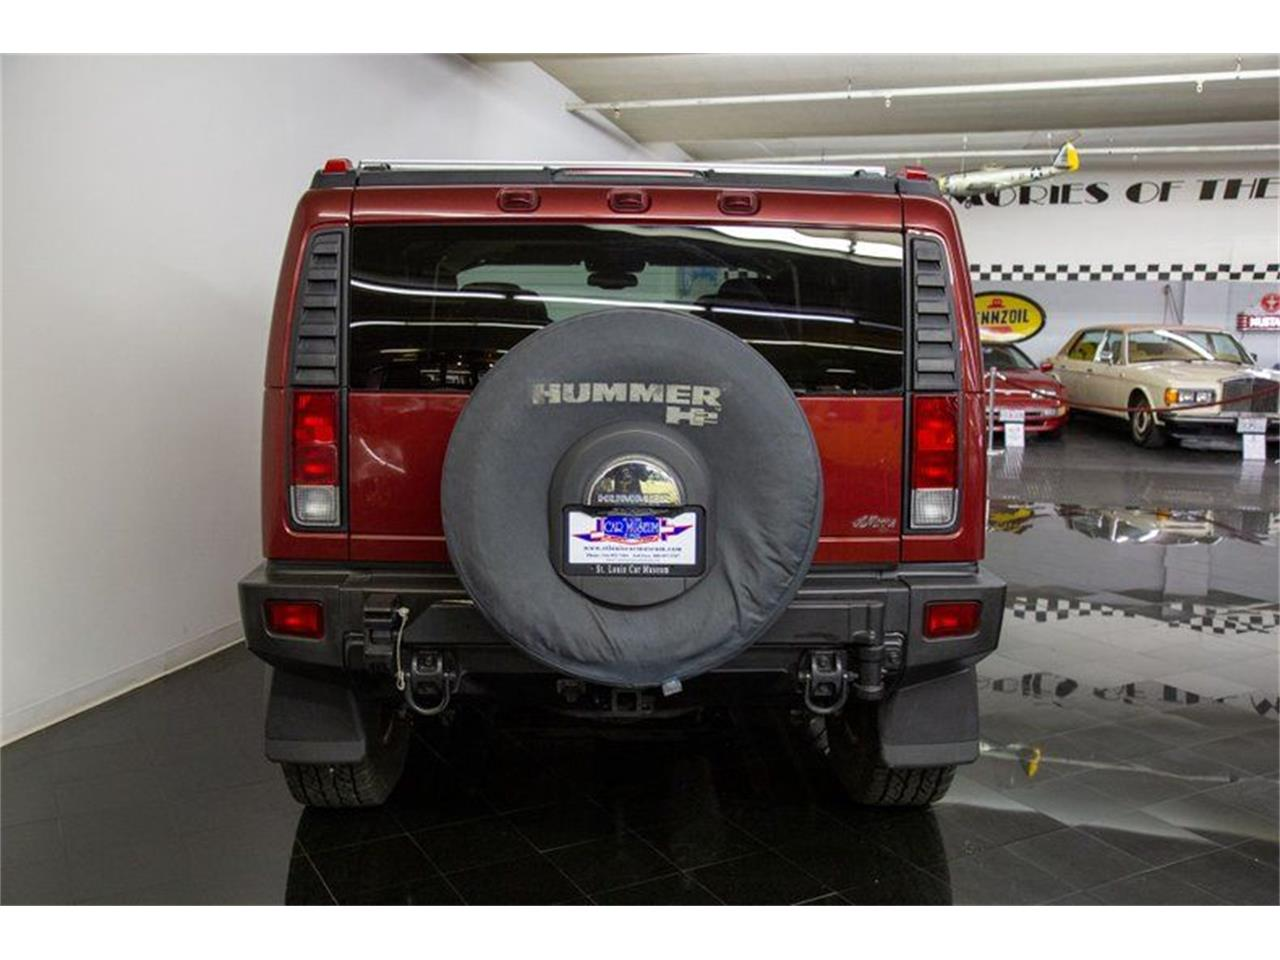 2005 Hummer H2 (CC-1297004) for sale in St. Louis, Missouri